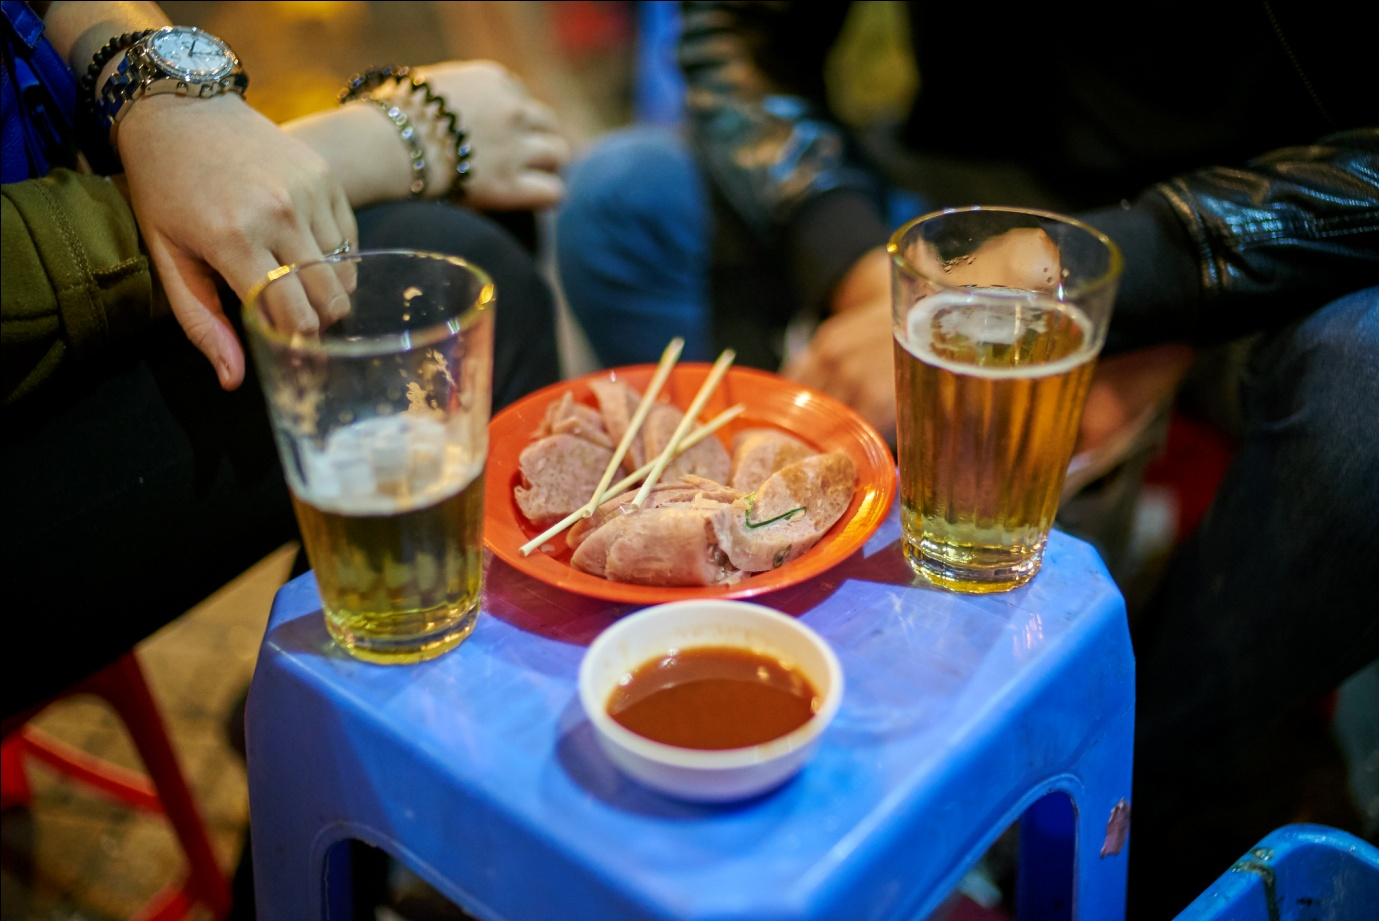 Bia hoi in Vietnam – cheapest beer in the world